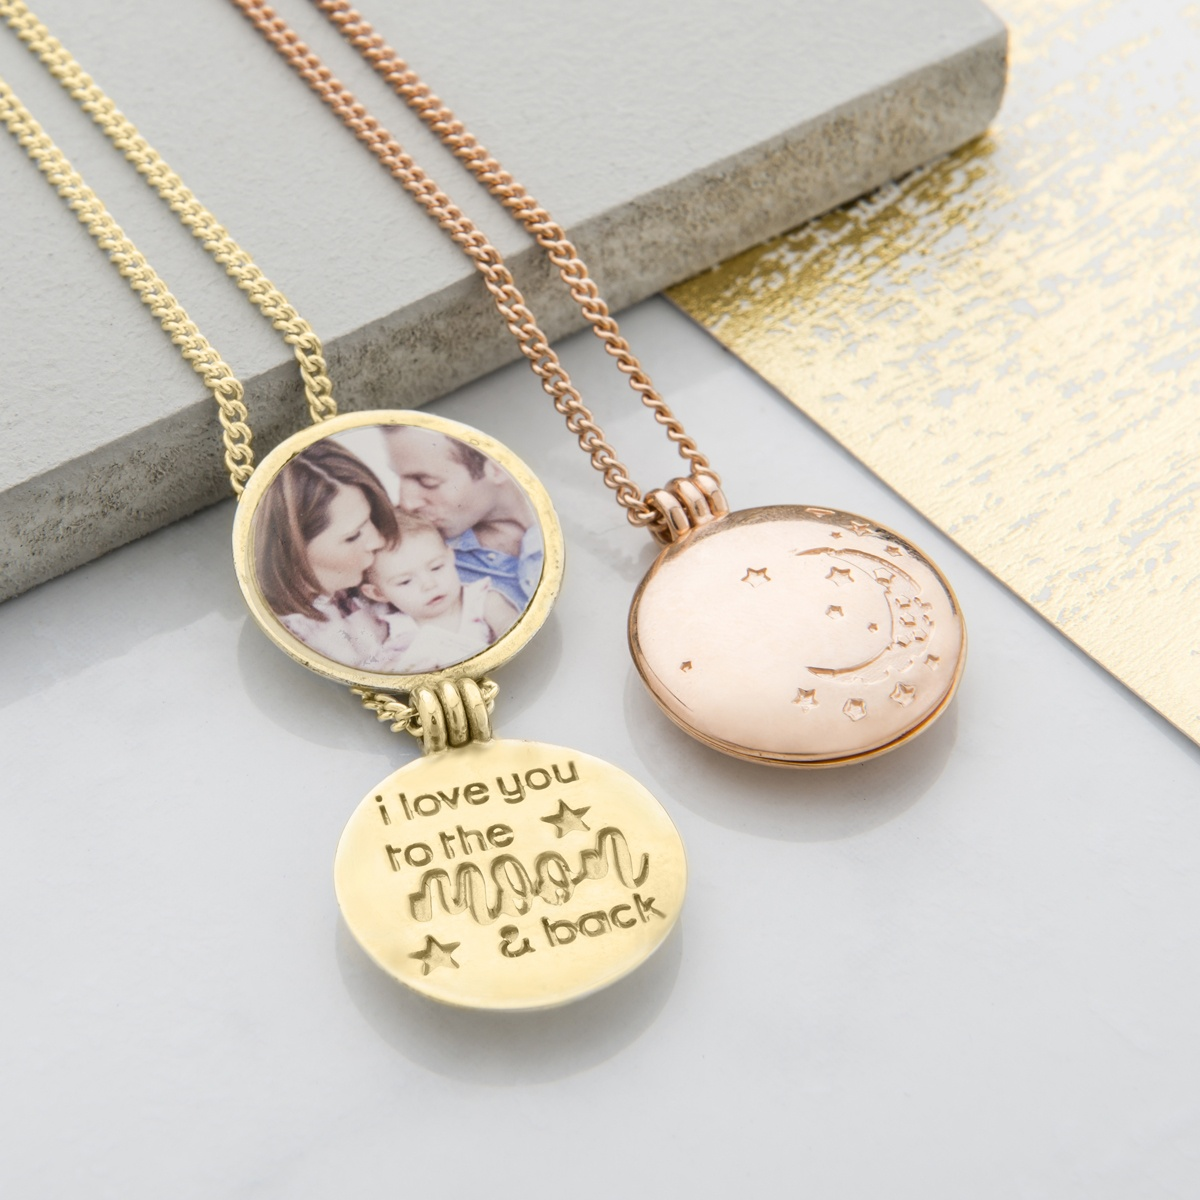 Rose and yellow gold I love you to the moon and back locket necklaces